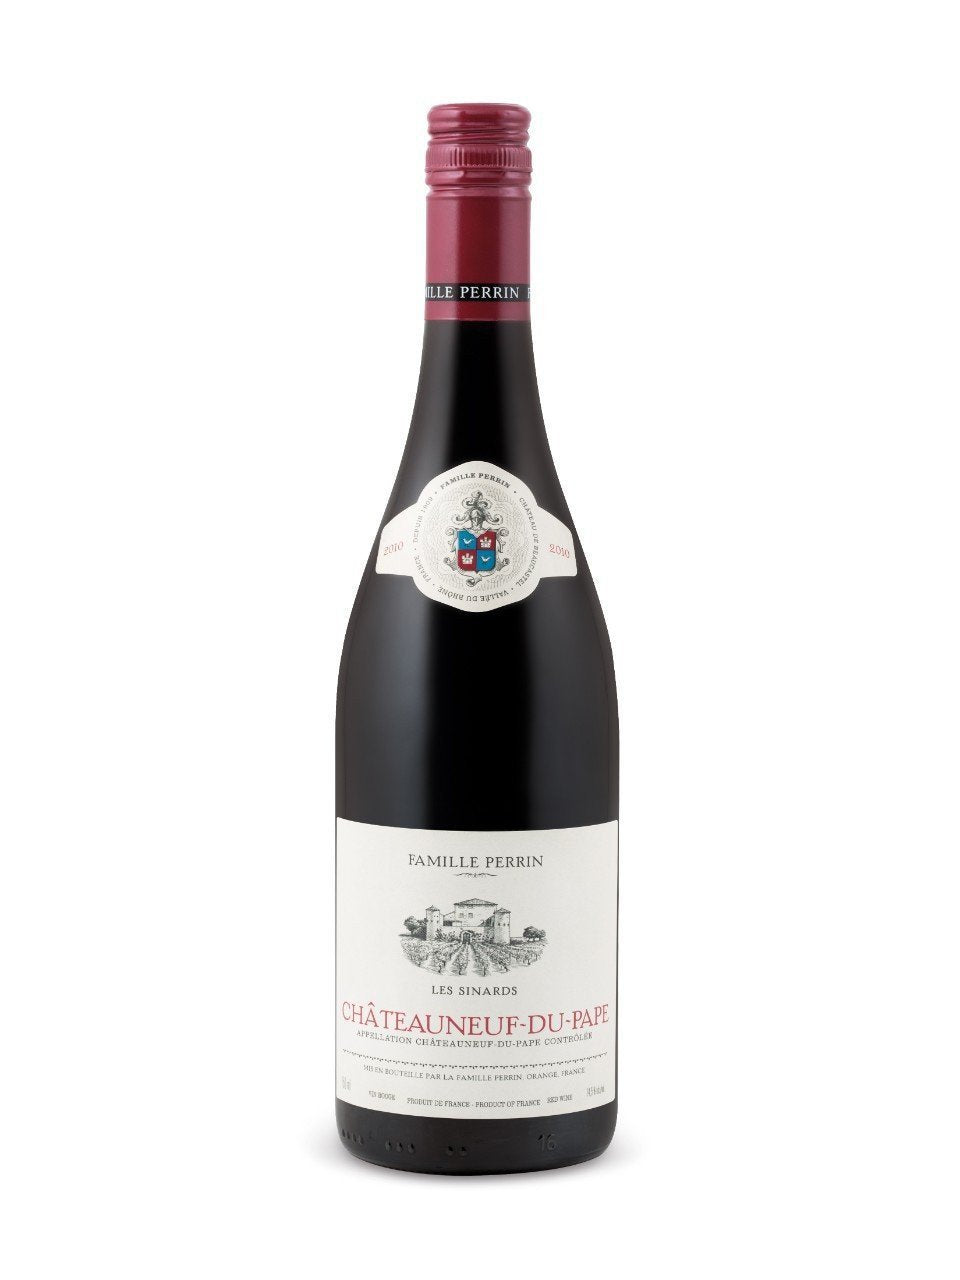 Reds - Perrin Les Sinards Chateauneuf-du-Pape